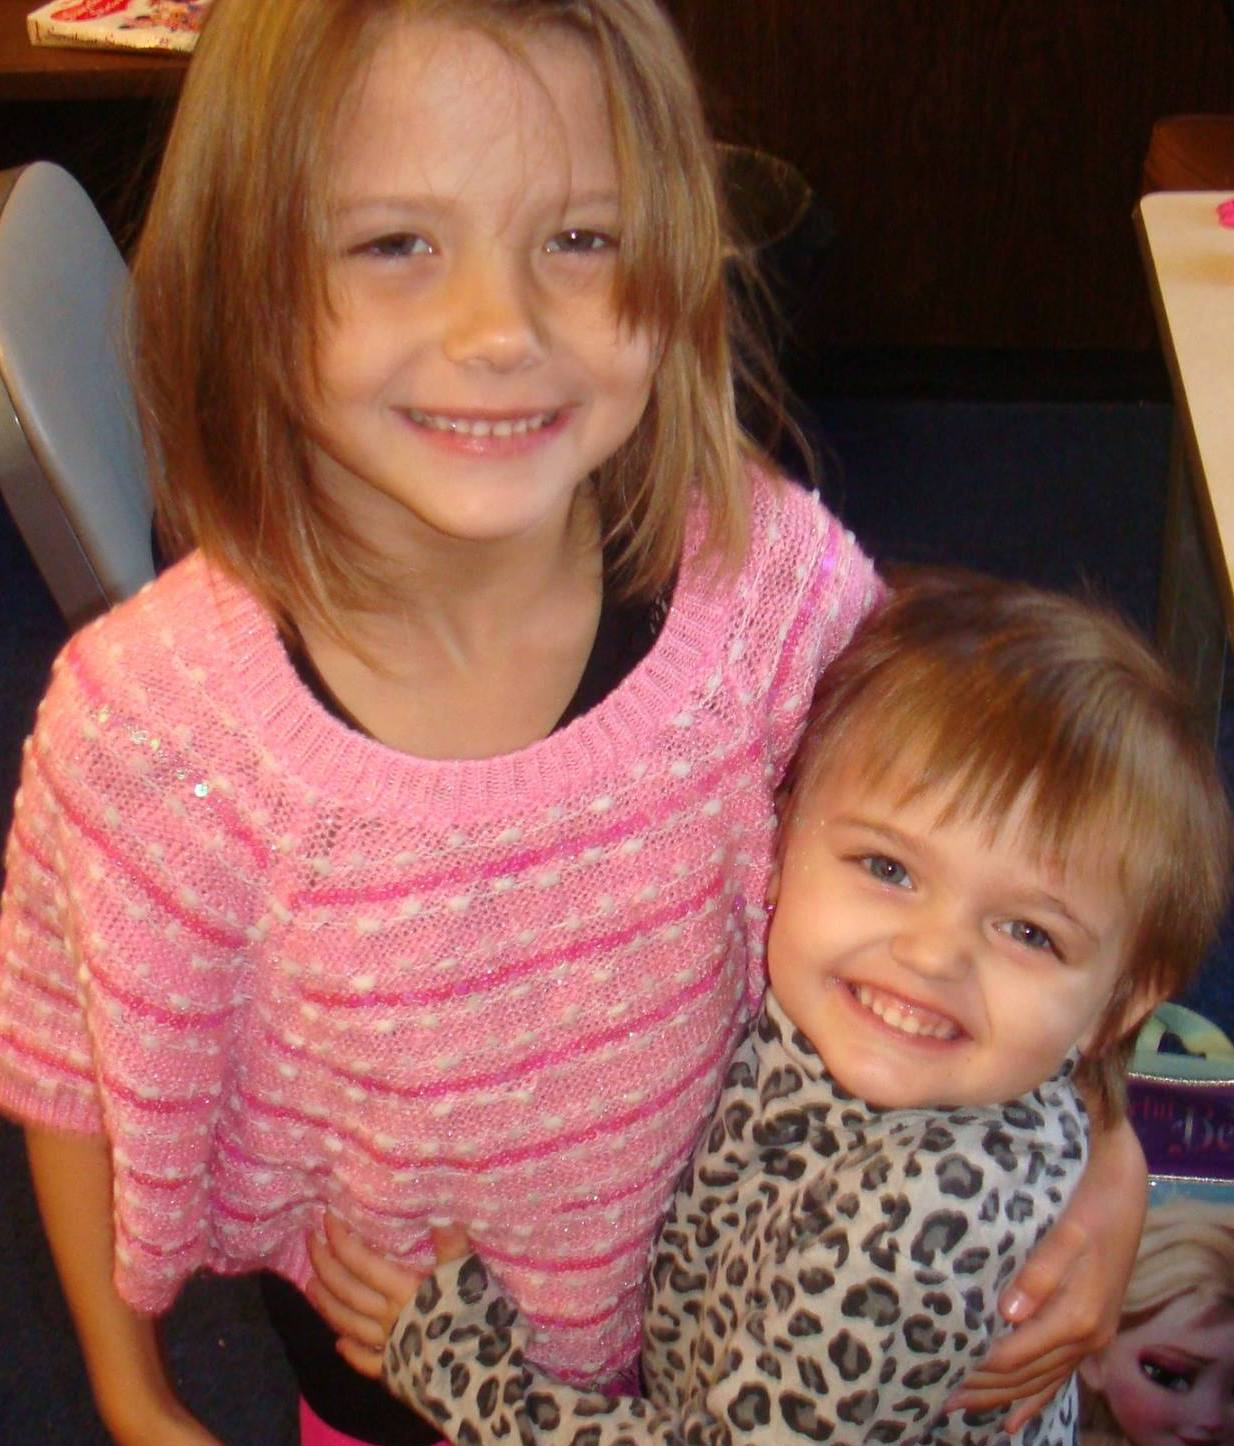 Kentucky Parents Found Not Guilty of Charges in Criminal Court but